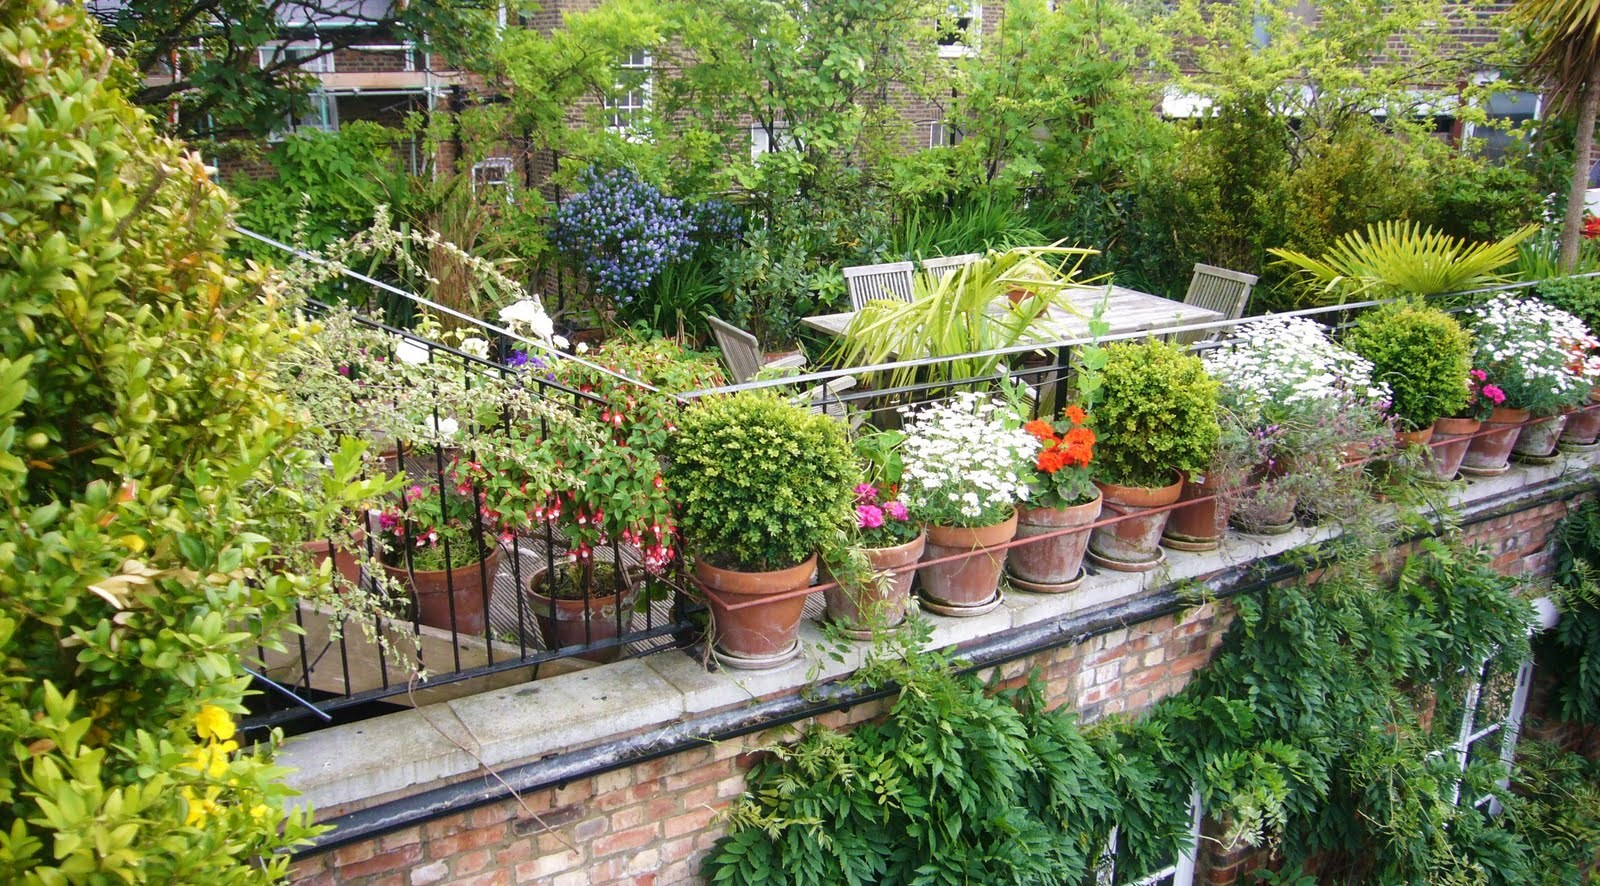 Fabulous space saving designs for the rooftop garden for Garden design ideas with pots